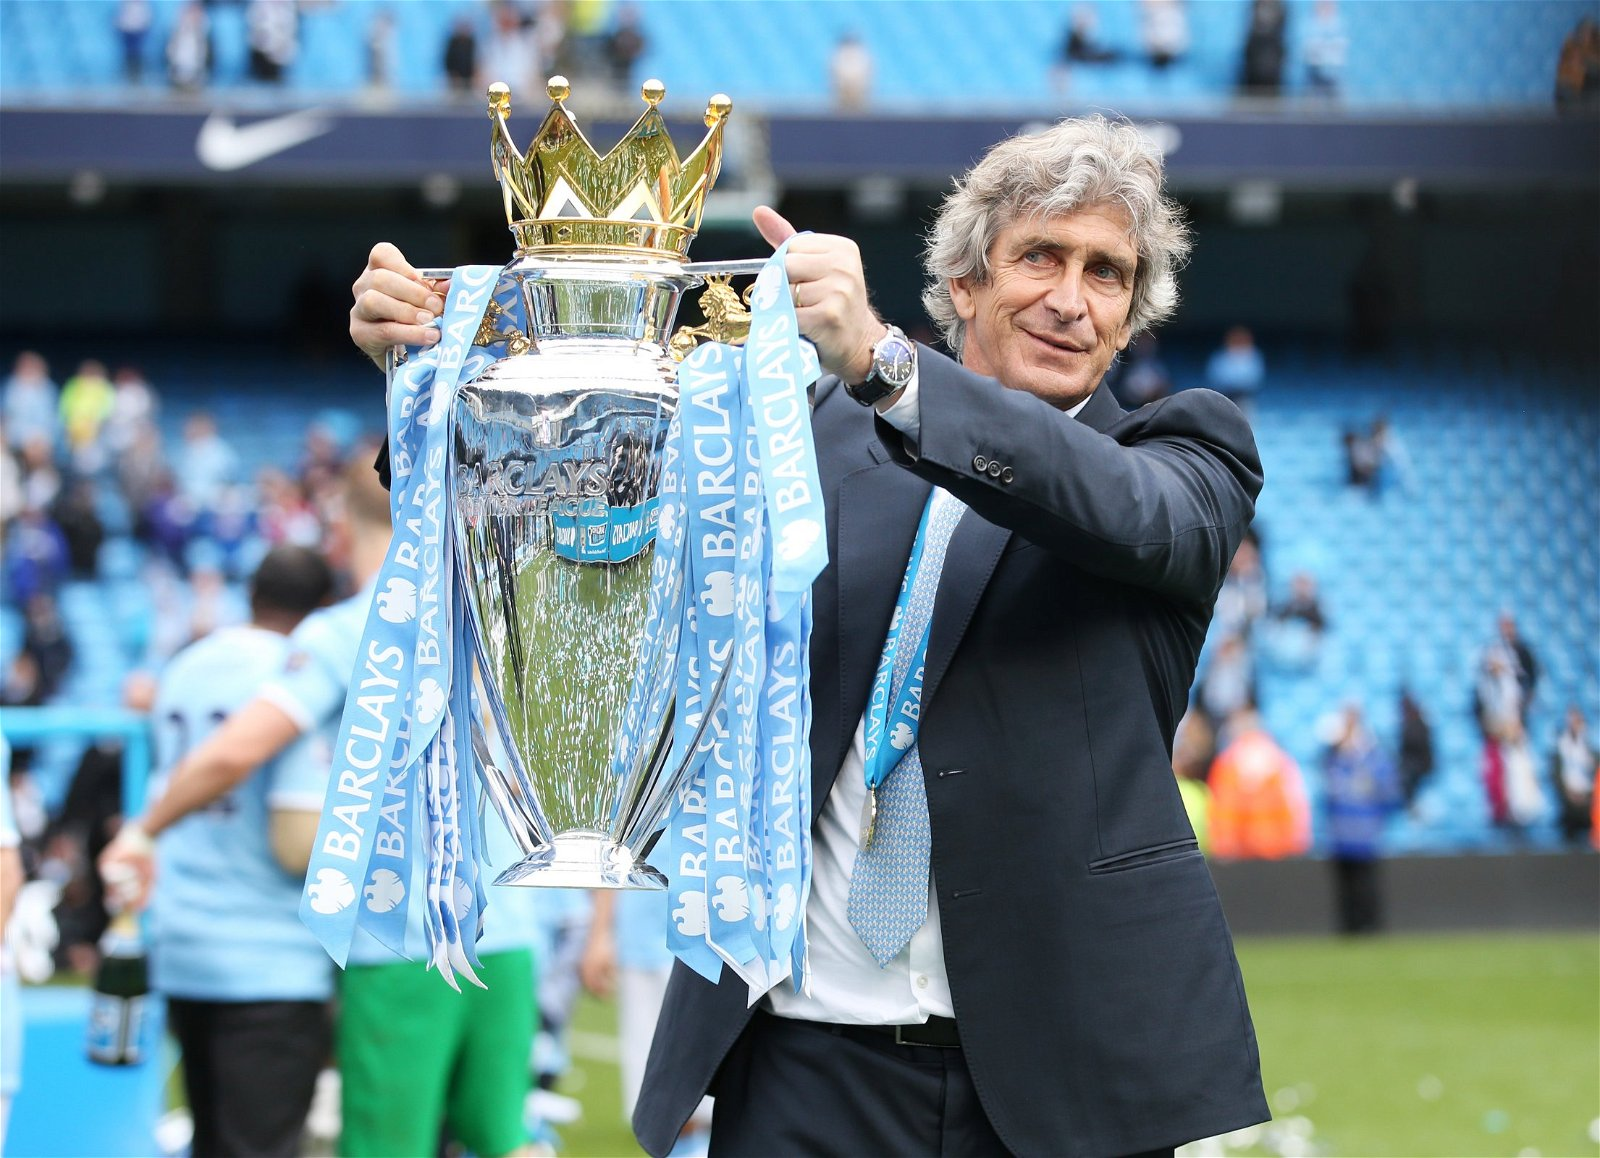 Manuel Pellegrini lifts the Premier League trophy at Manchester City